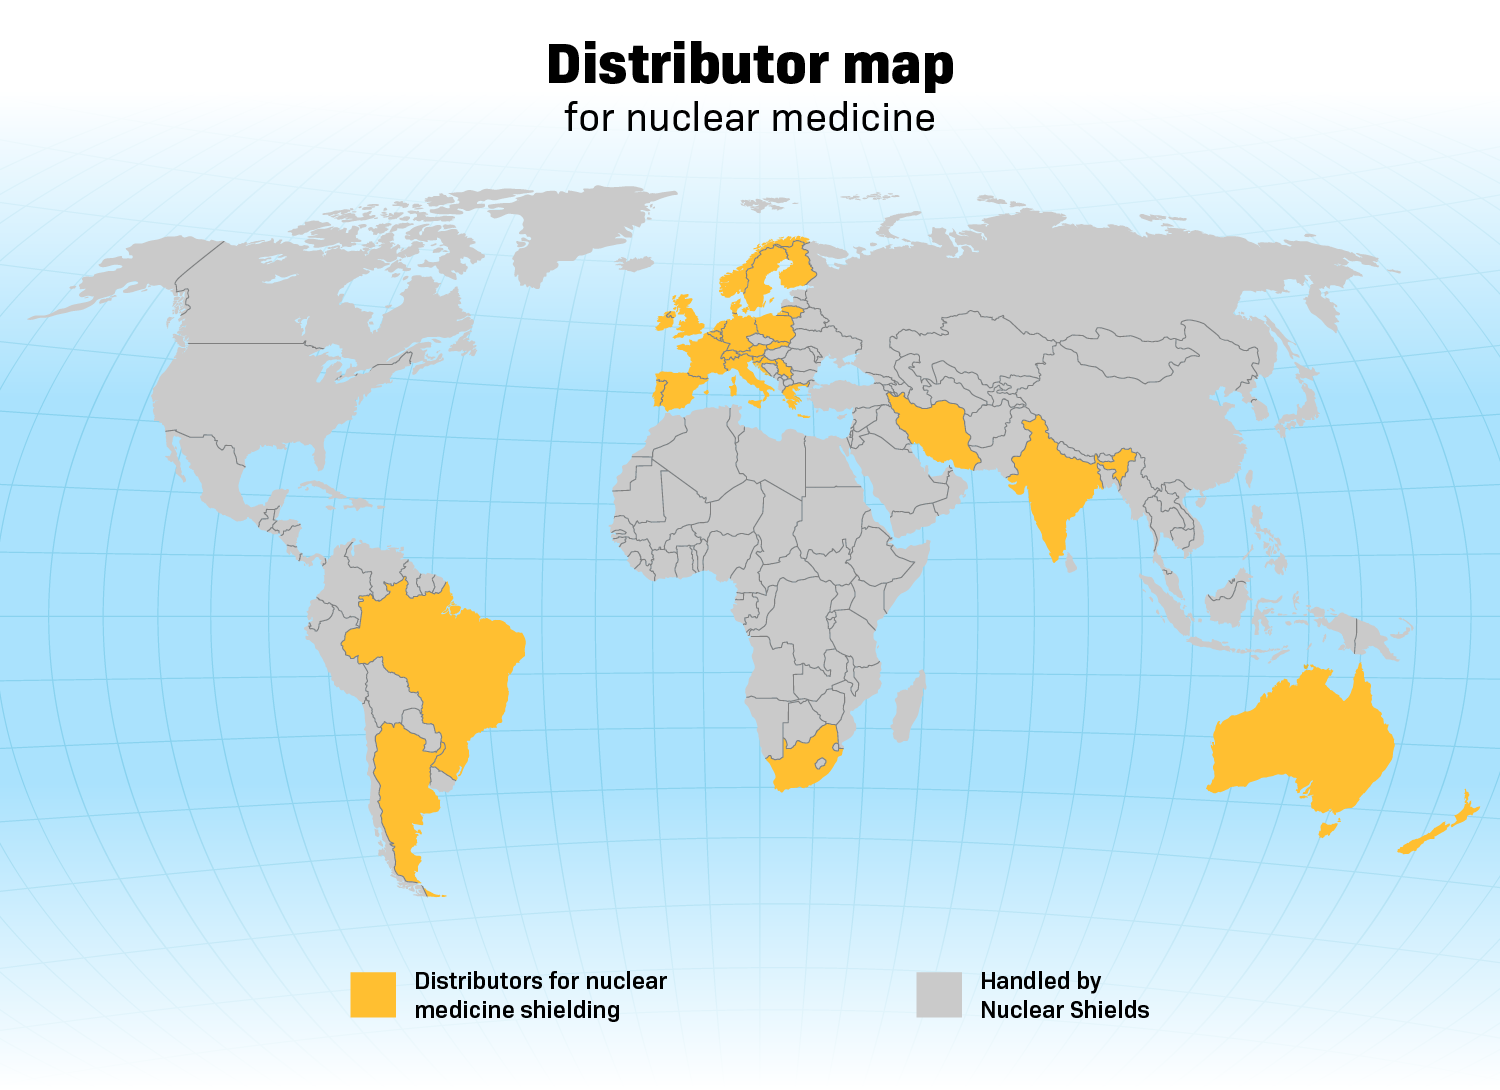 Nuclear Shields Distributor Map